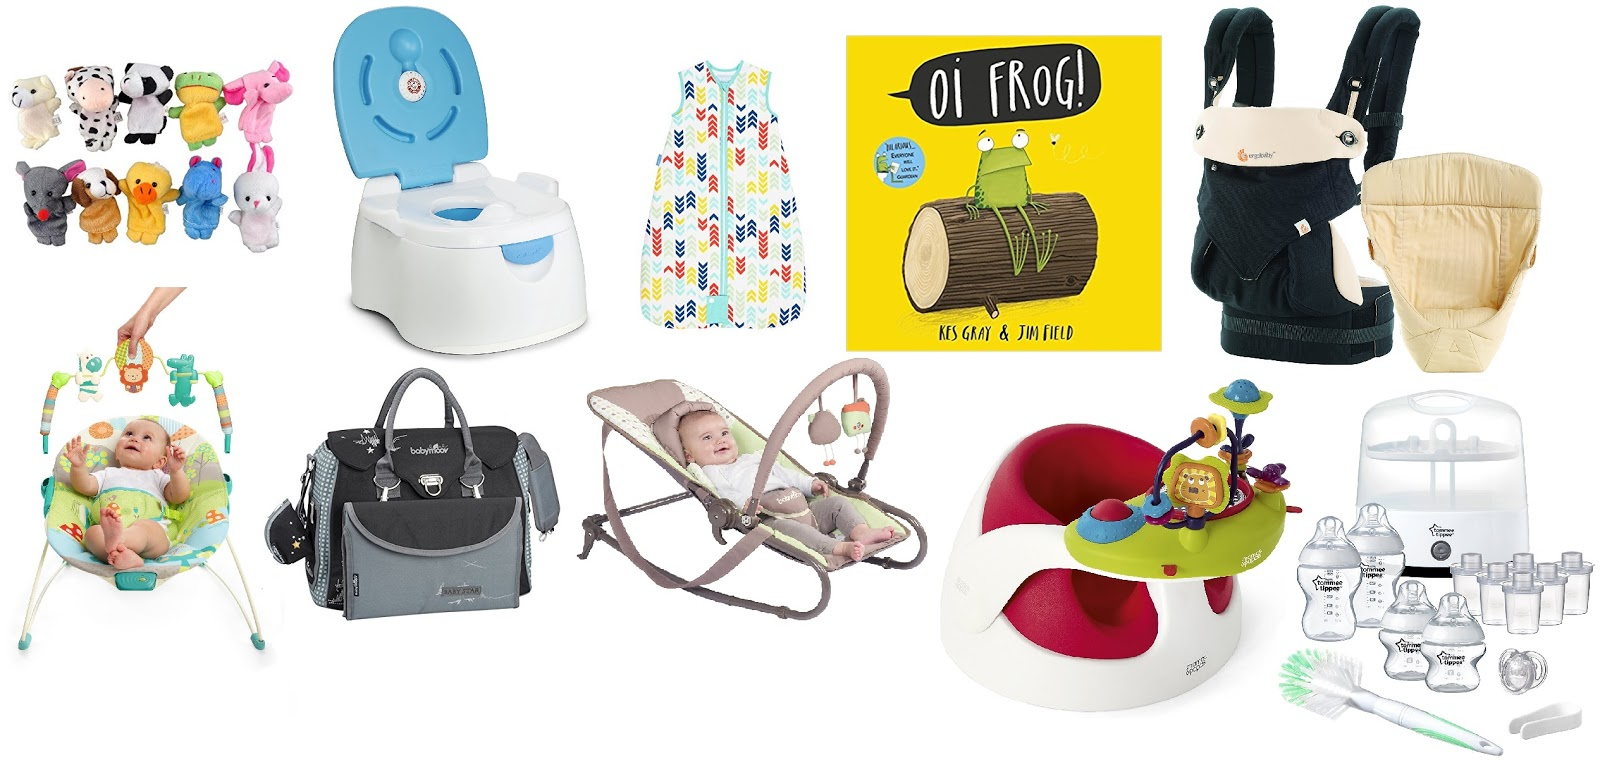 AWESOME BLACK FRIDAY DEALS 2017 baby products | LOVE, MAISIE | www.lovemaisie.com